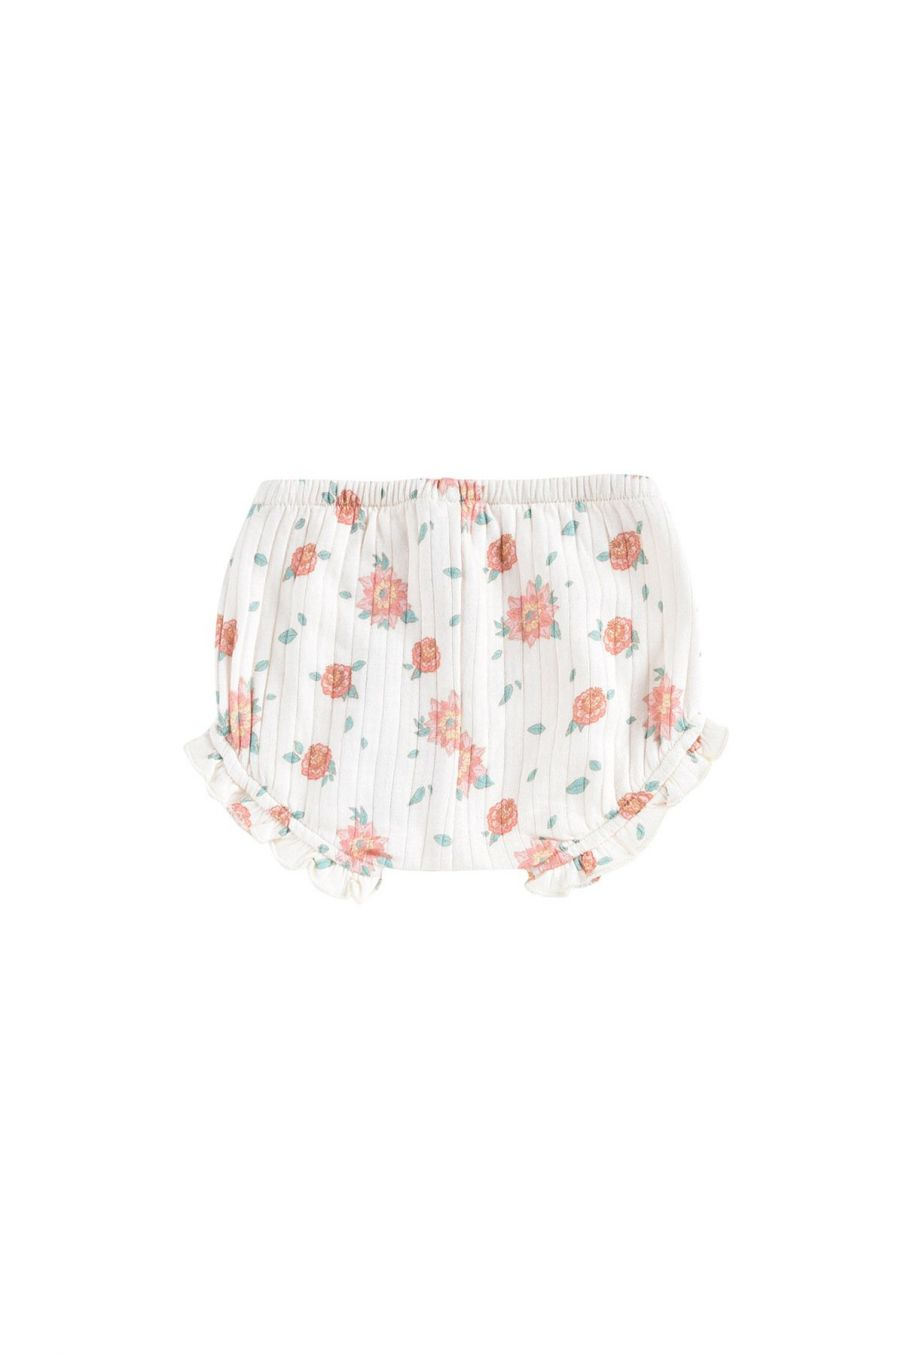 boheme chic vintage bloomer bébé fille anchita off-white flowers